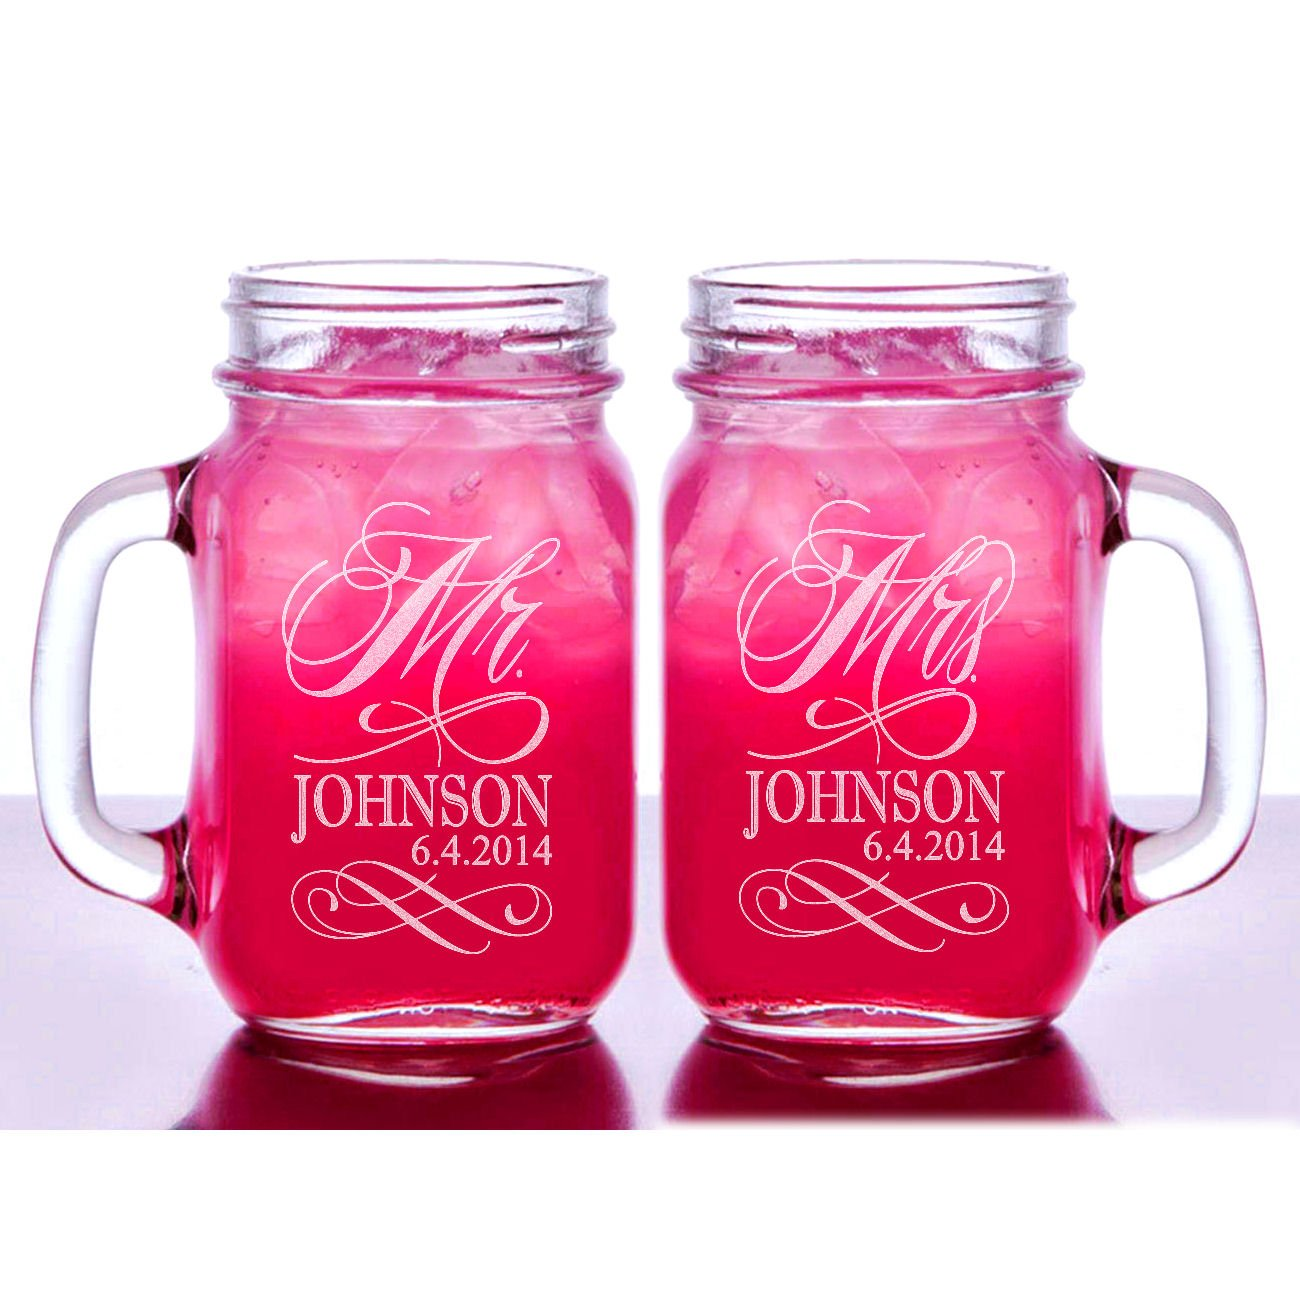 Custom Etched Personalized Mason Mugs, Set of 2, Clear